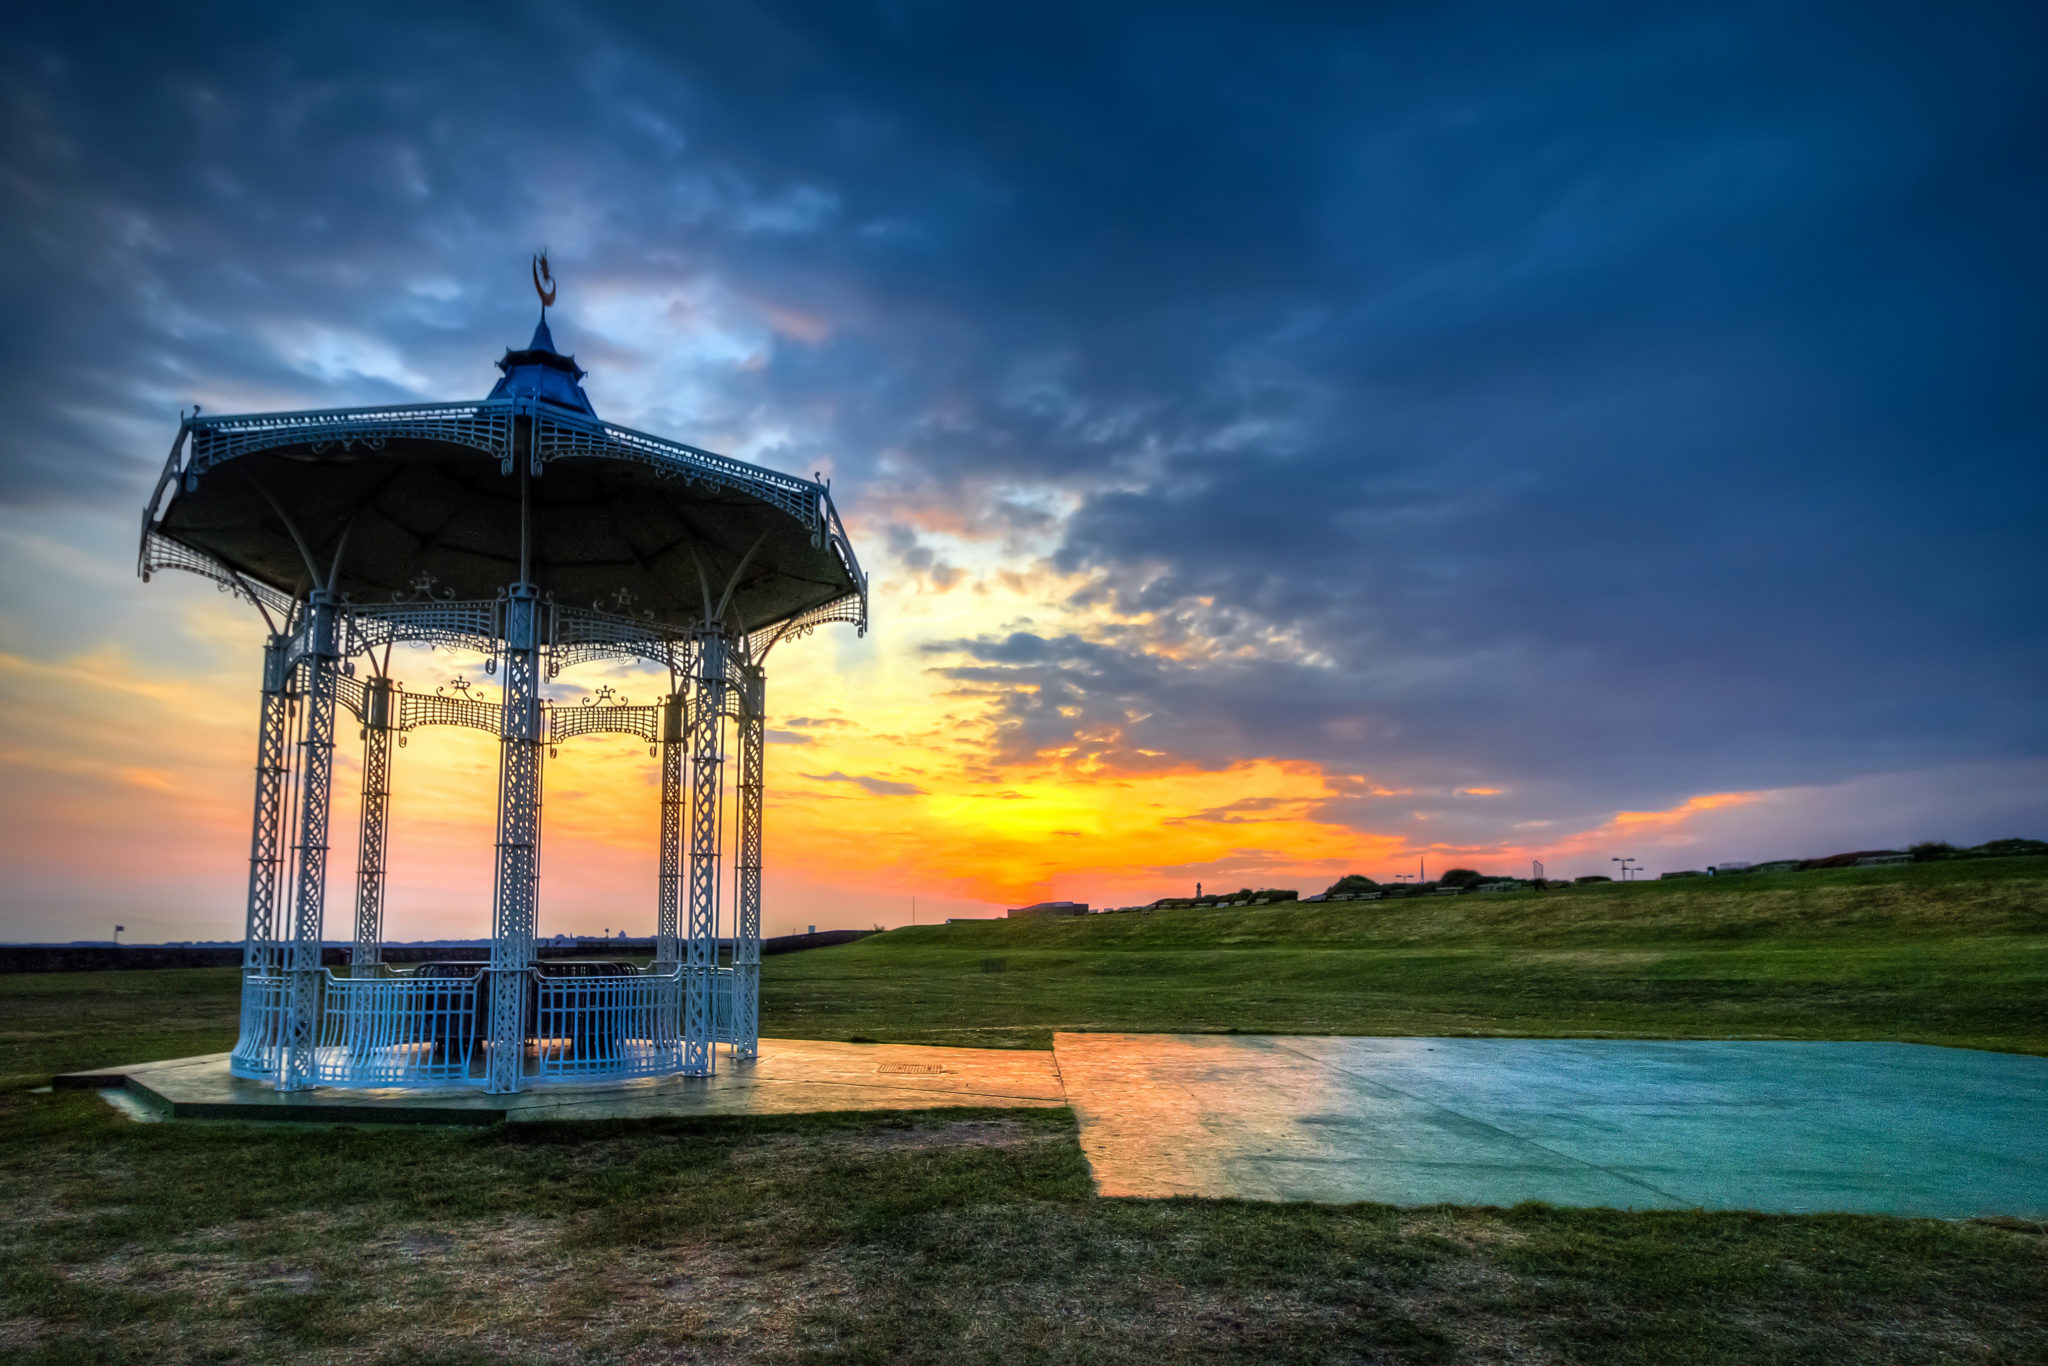 Bandstand-15x10